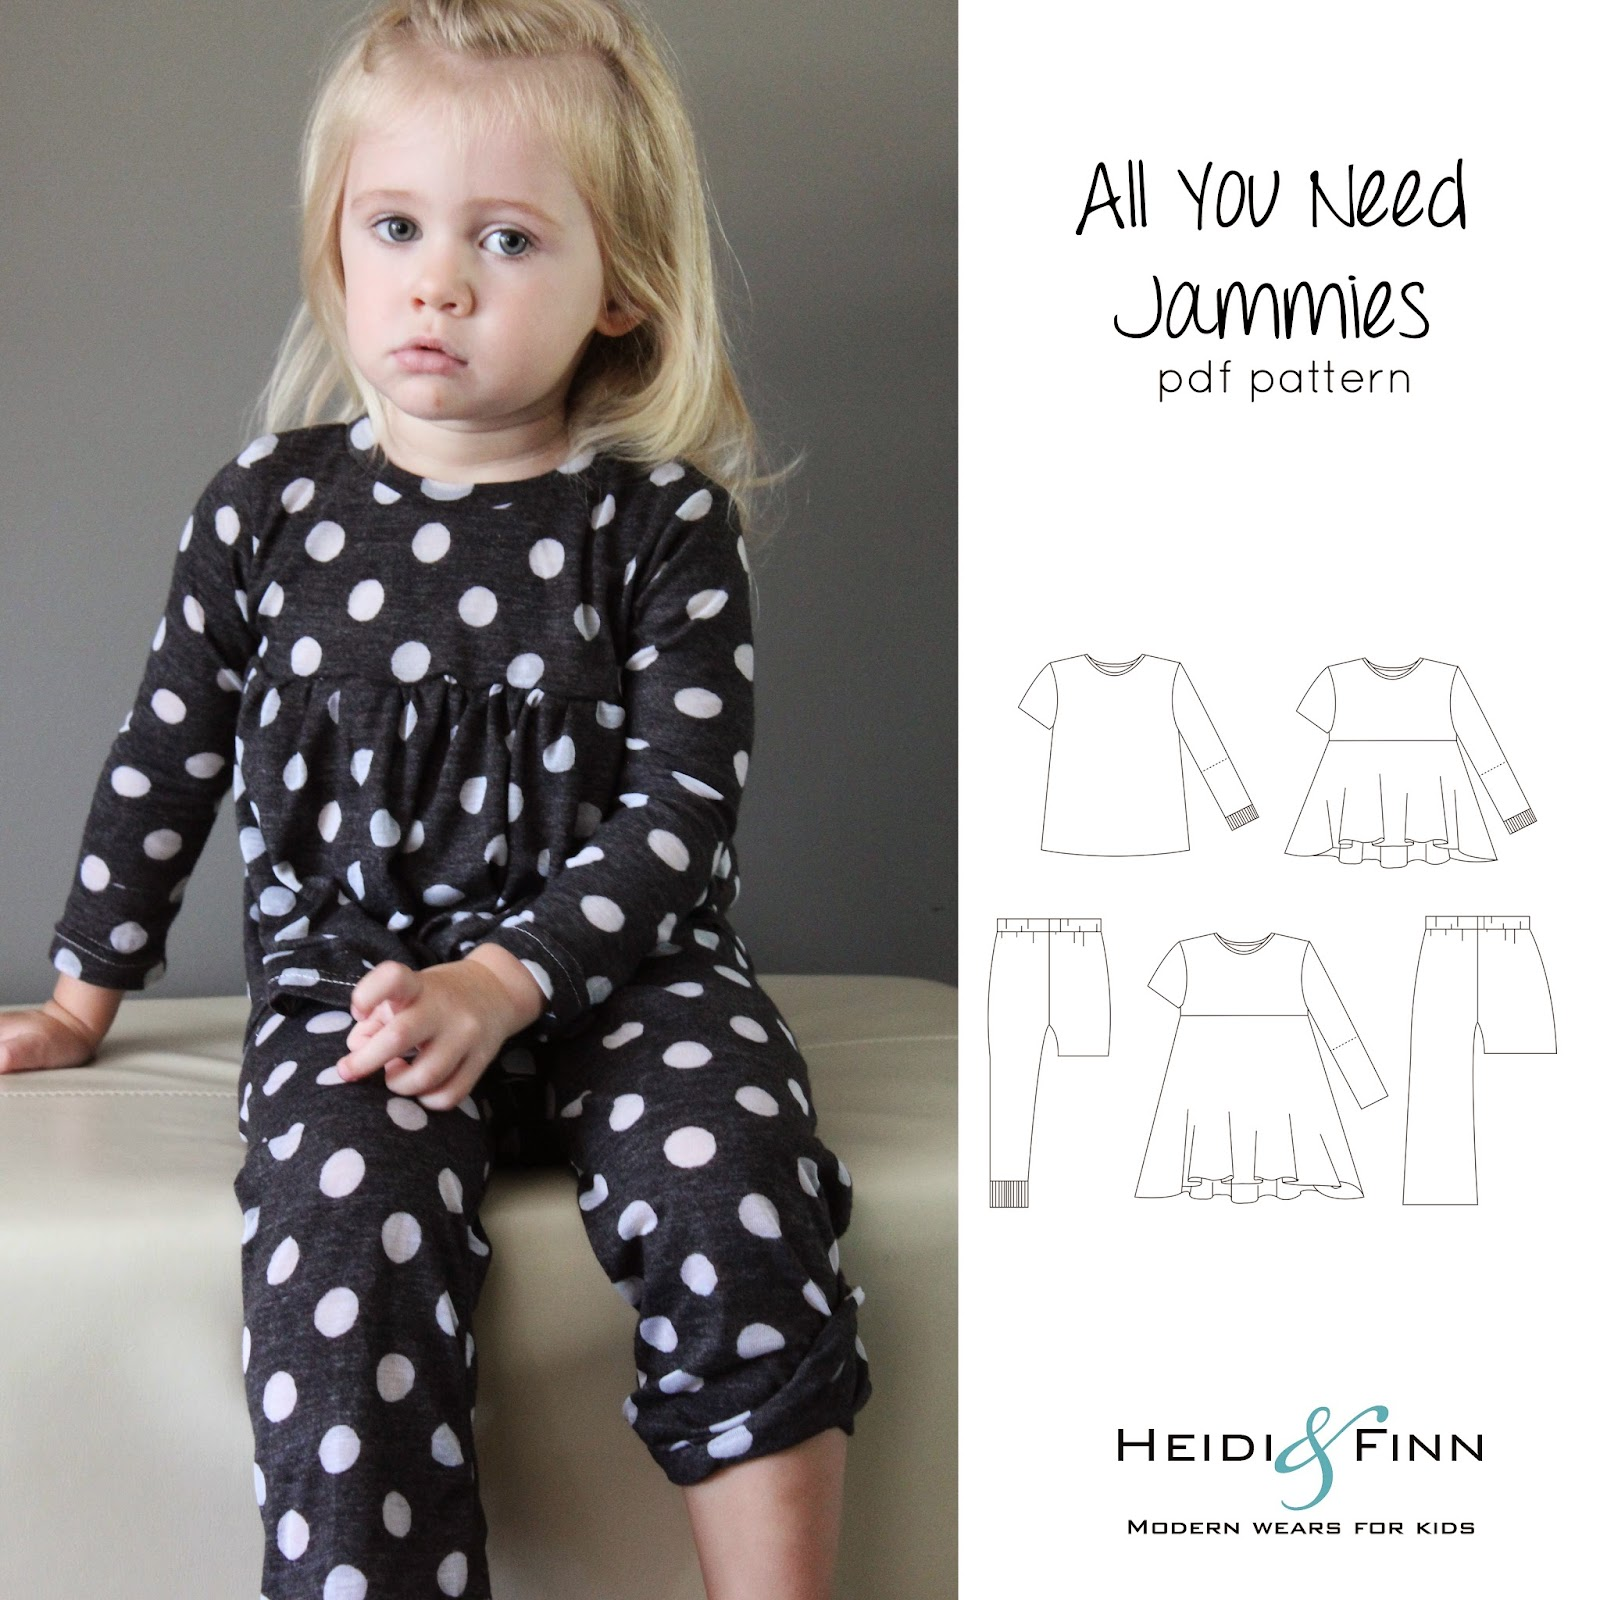 Heidiandfinn modern wears for kids all you need jammies tester thursday september 11 2014 jeuxipadfo Choice Image